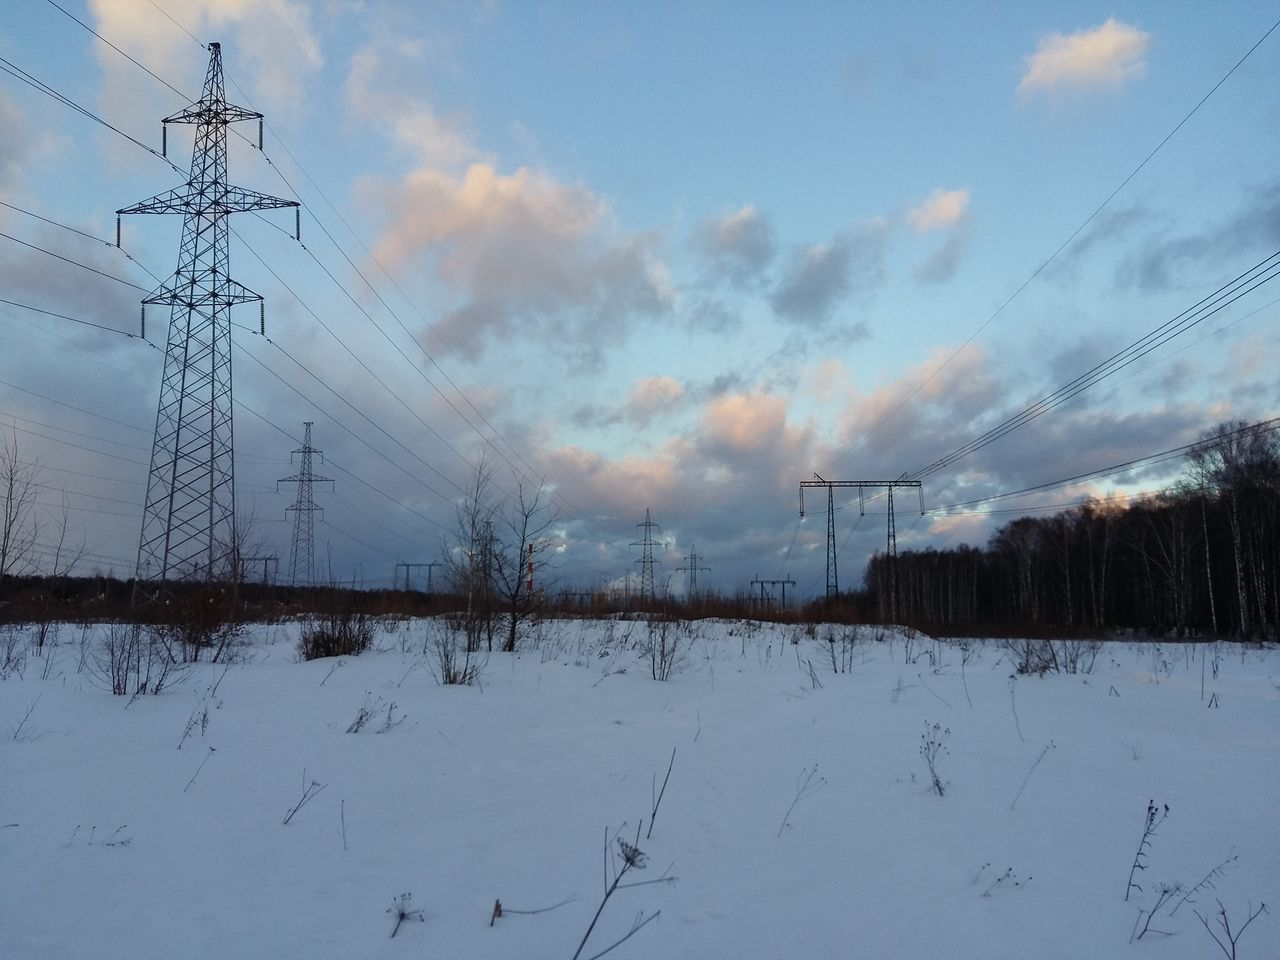 cable, winter, cold temperature, snow, electricity pylon, electricity, connection, power line, weather, sky, nature, cloud - sky, power supply, technology, outdoors, day, field, fuel and power generation, tranquility, tranquil scene, no people, landscape, beauty in nature, scenics, low angle view, tree